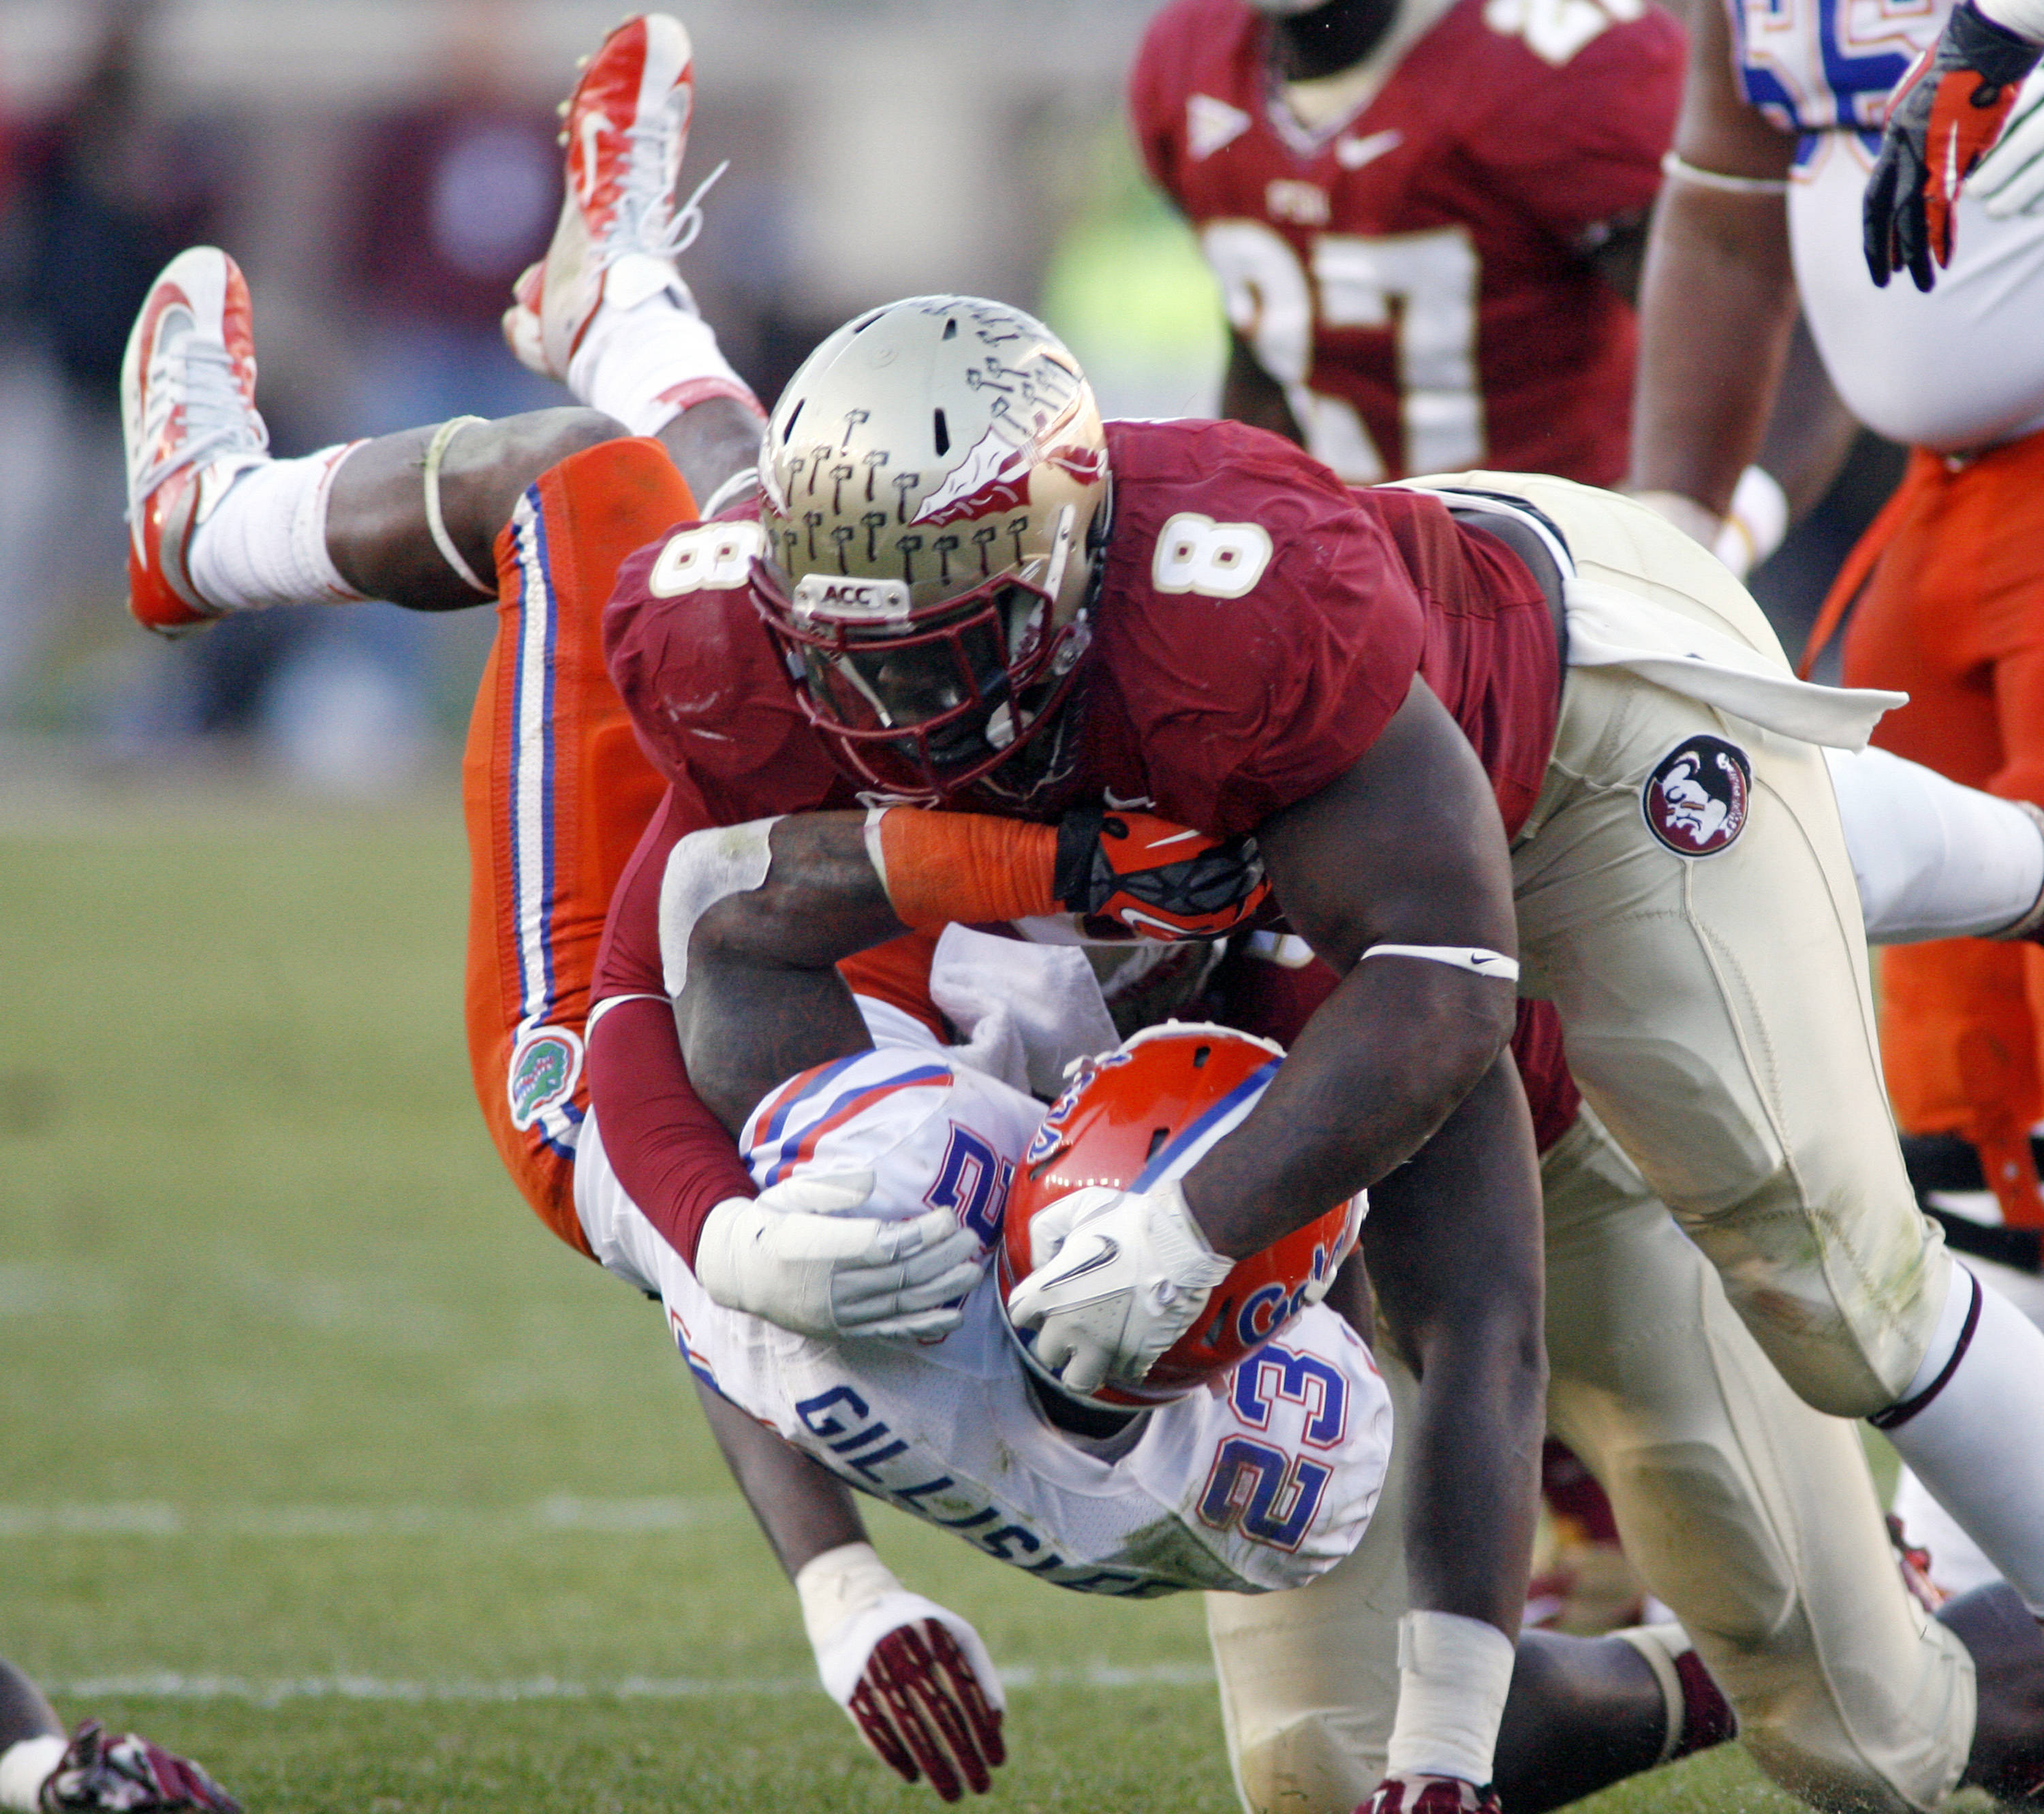 Florida State defensive tackle Timmy Jernigan (8) upends Florida running back Mike Gillislee (23). (AP Photo/Phil Sears)